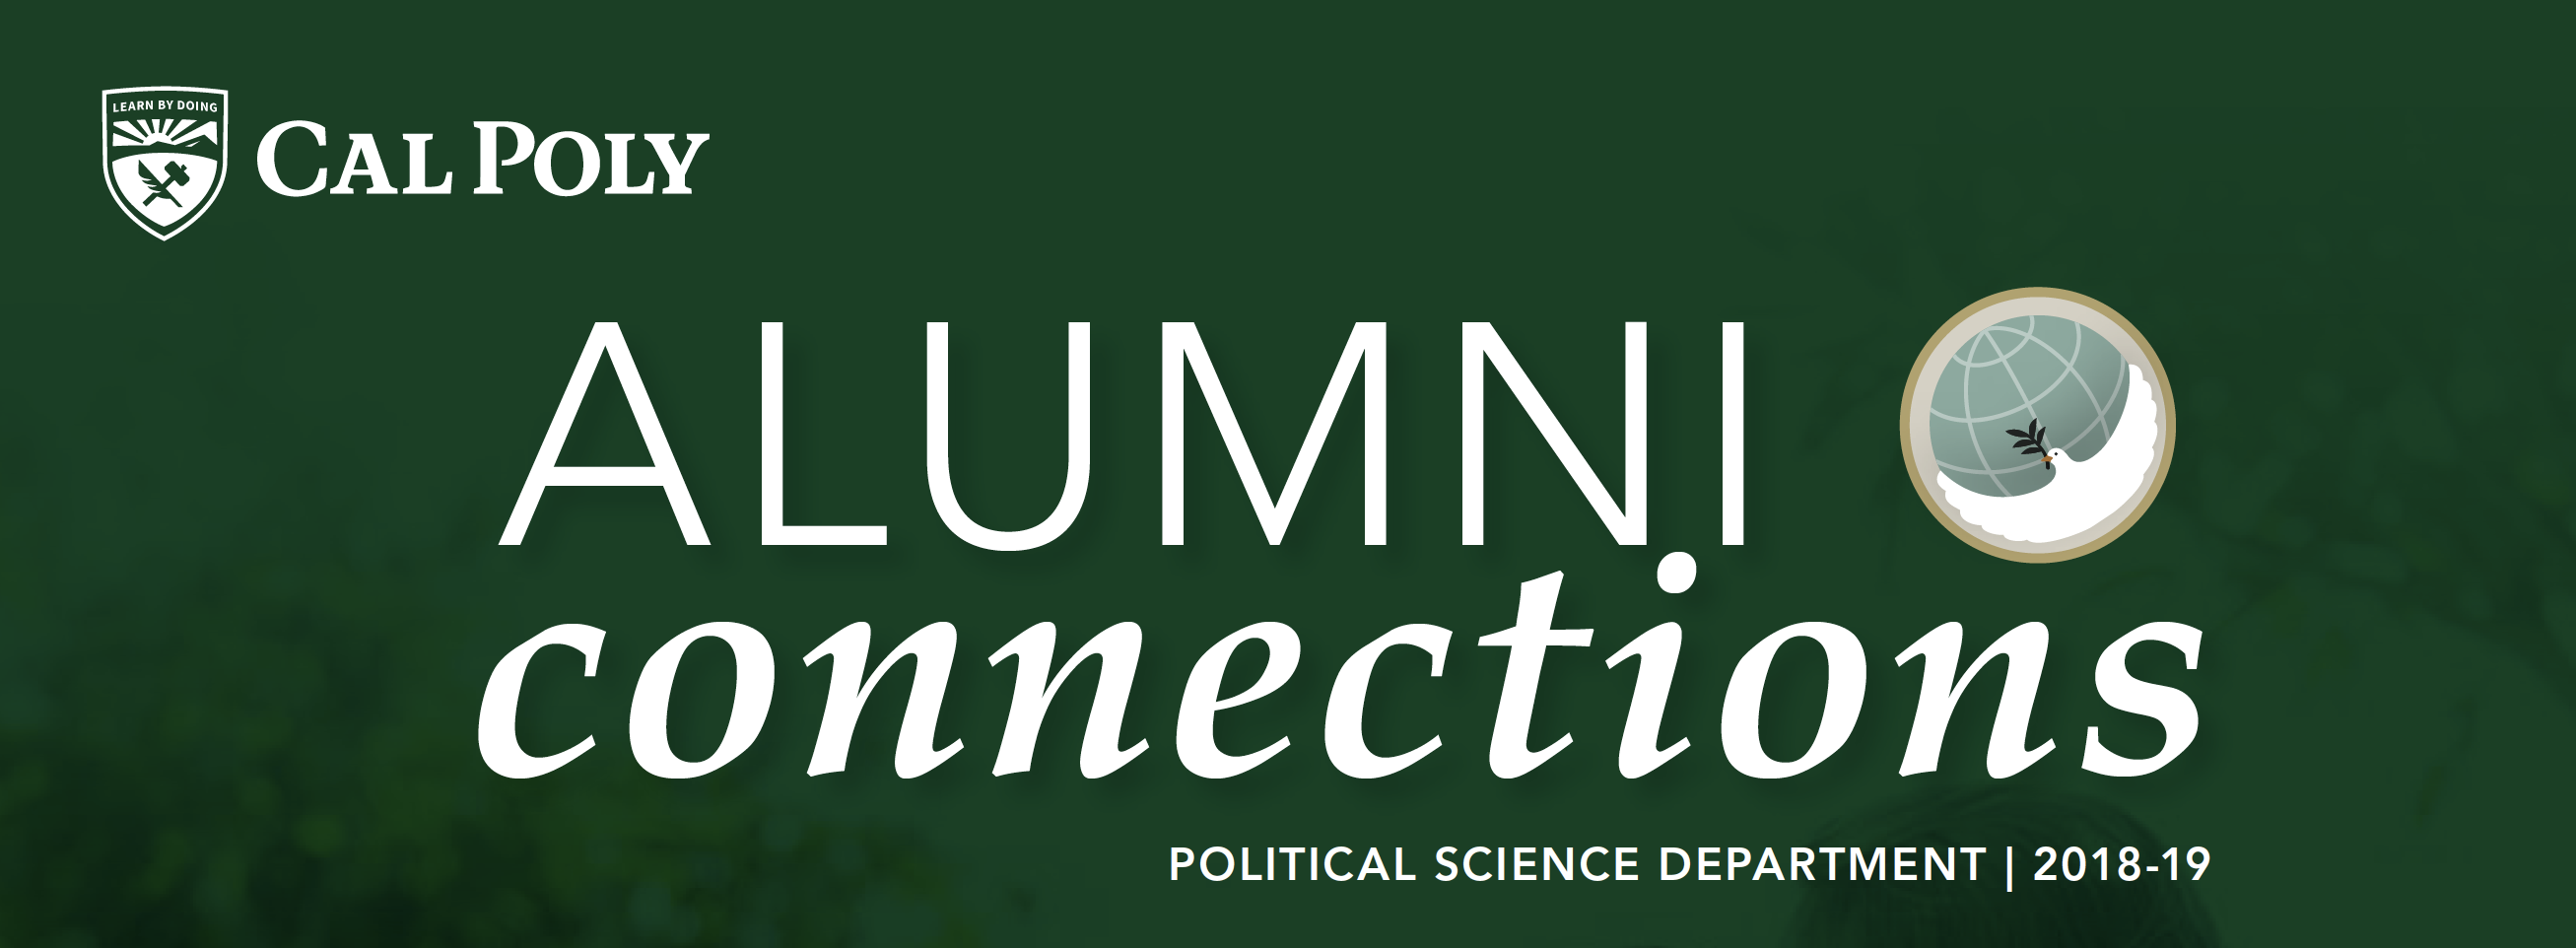 Political Science Newsletter Banner